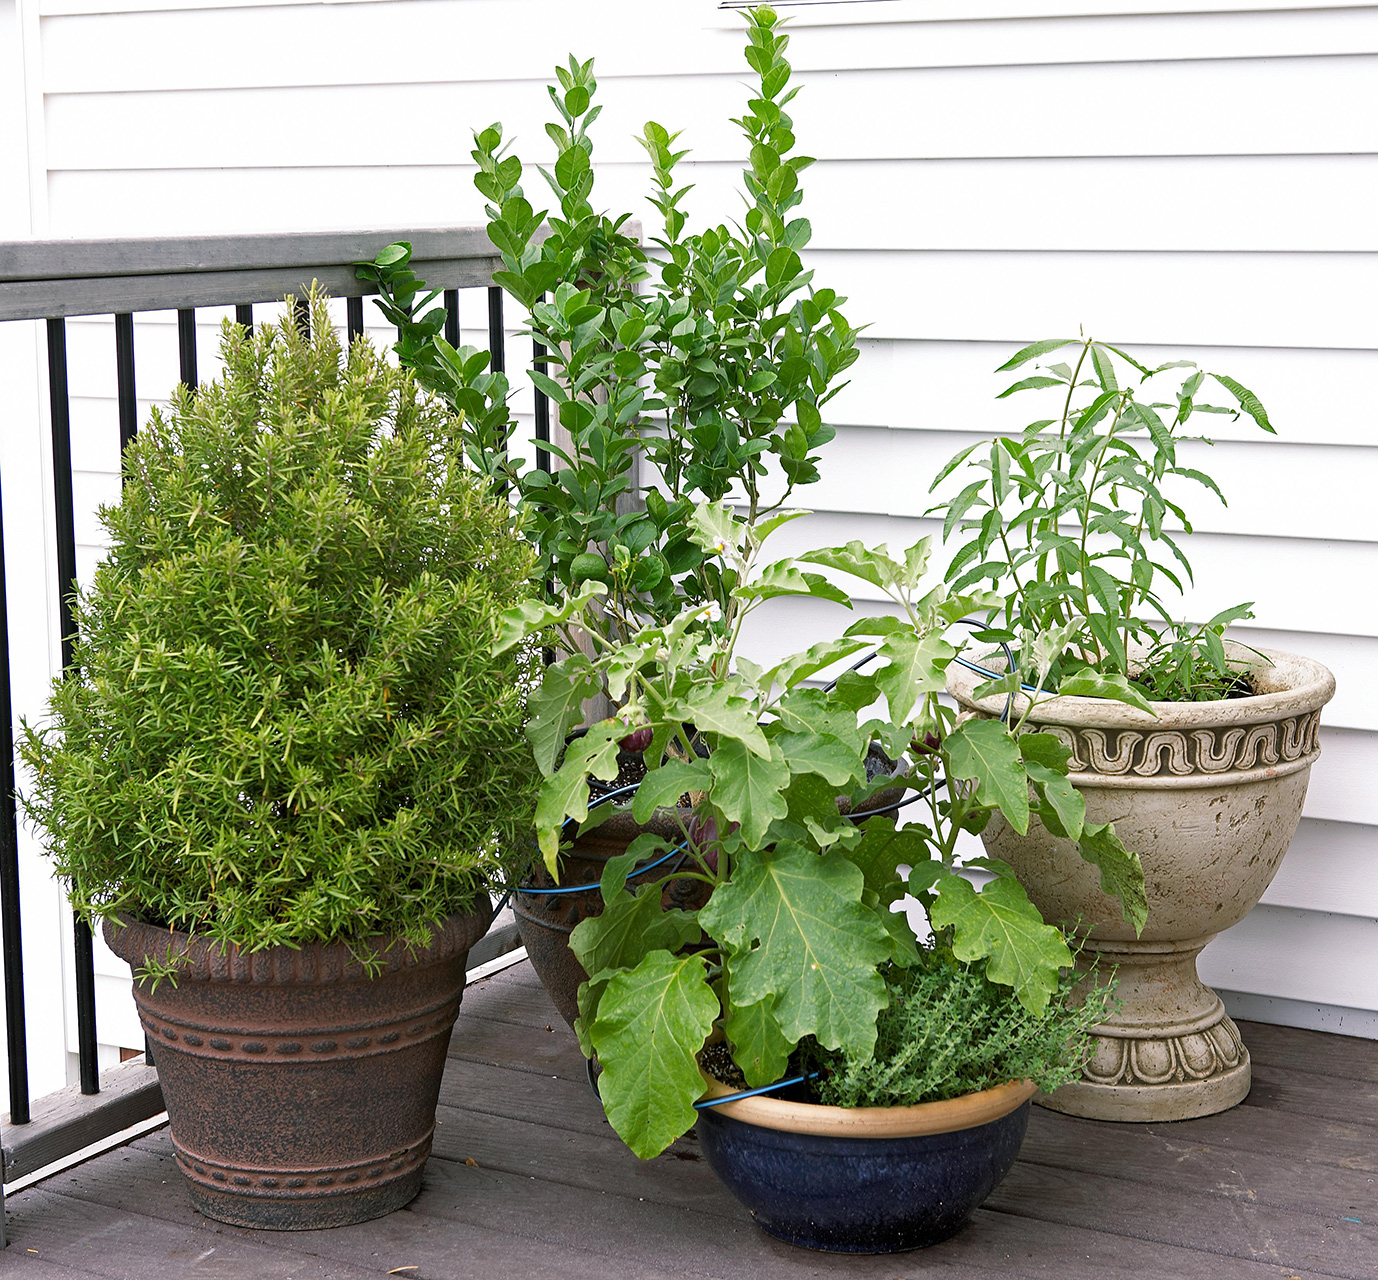 multi-textured plants in containers on deck